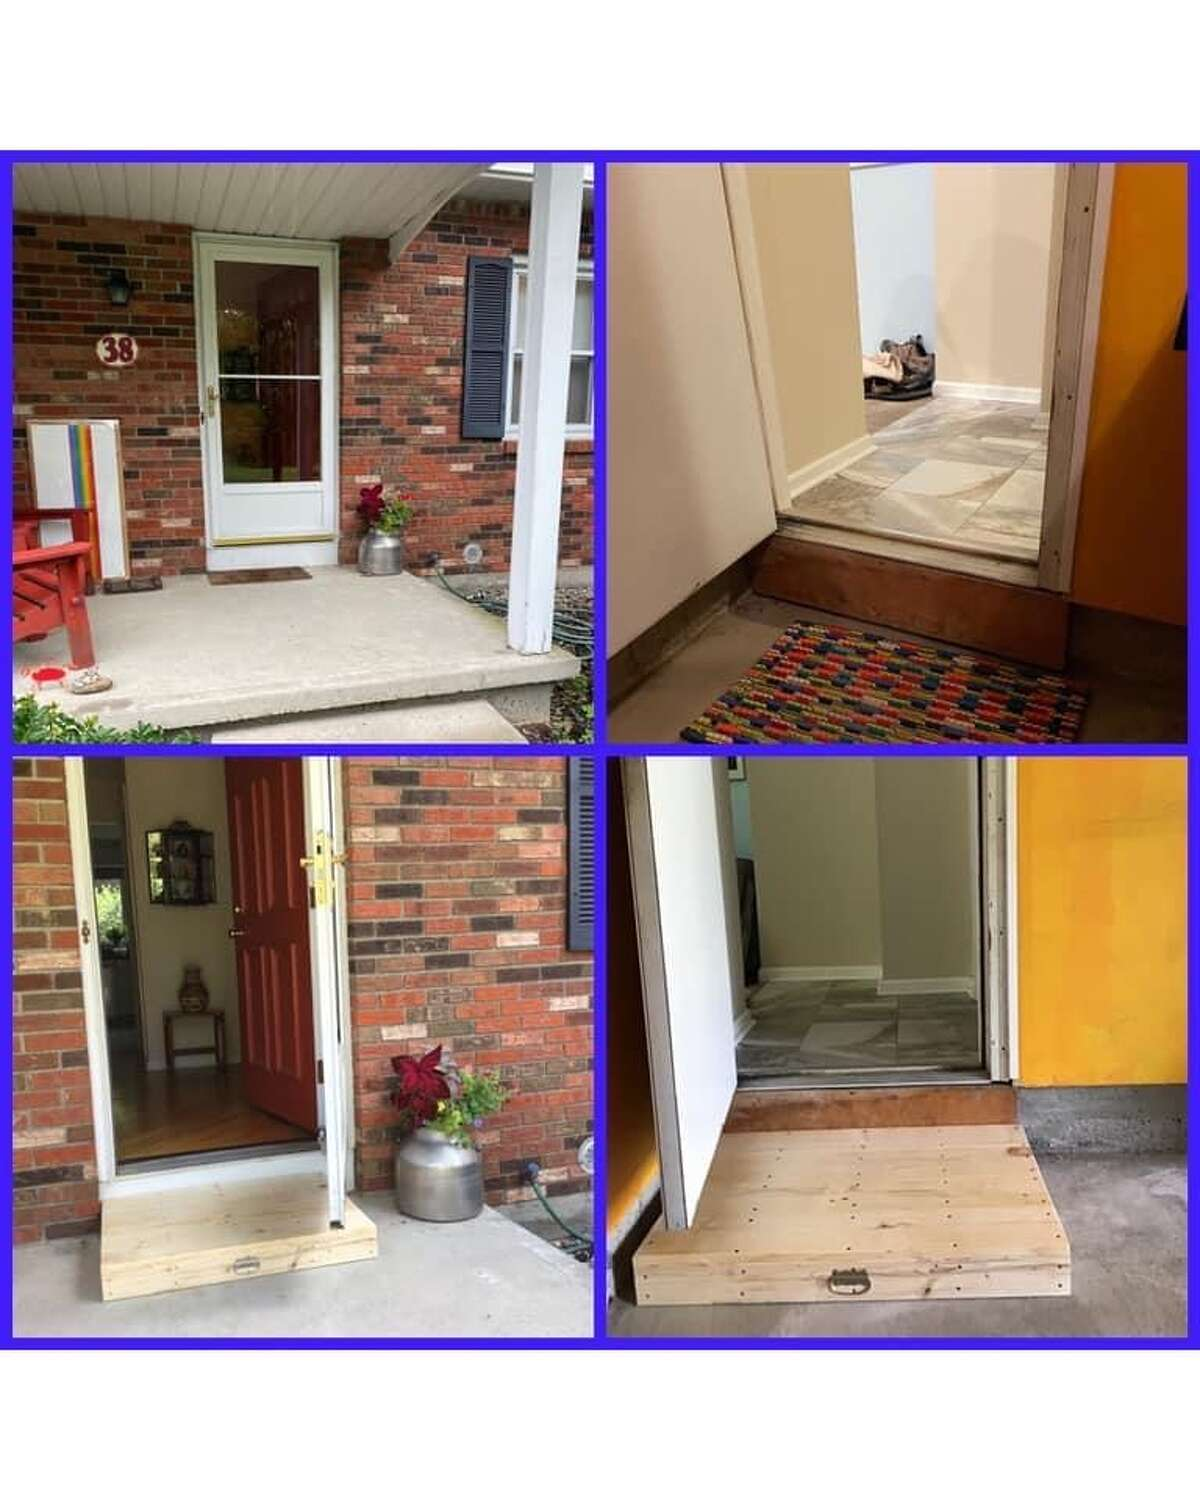 Examples of risers placed outside doorways to reduce the height of the steps.